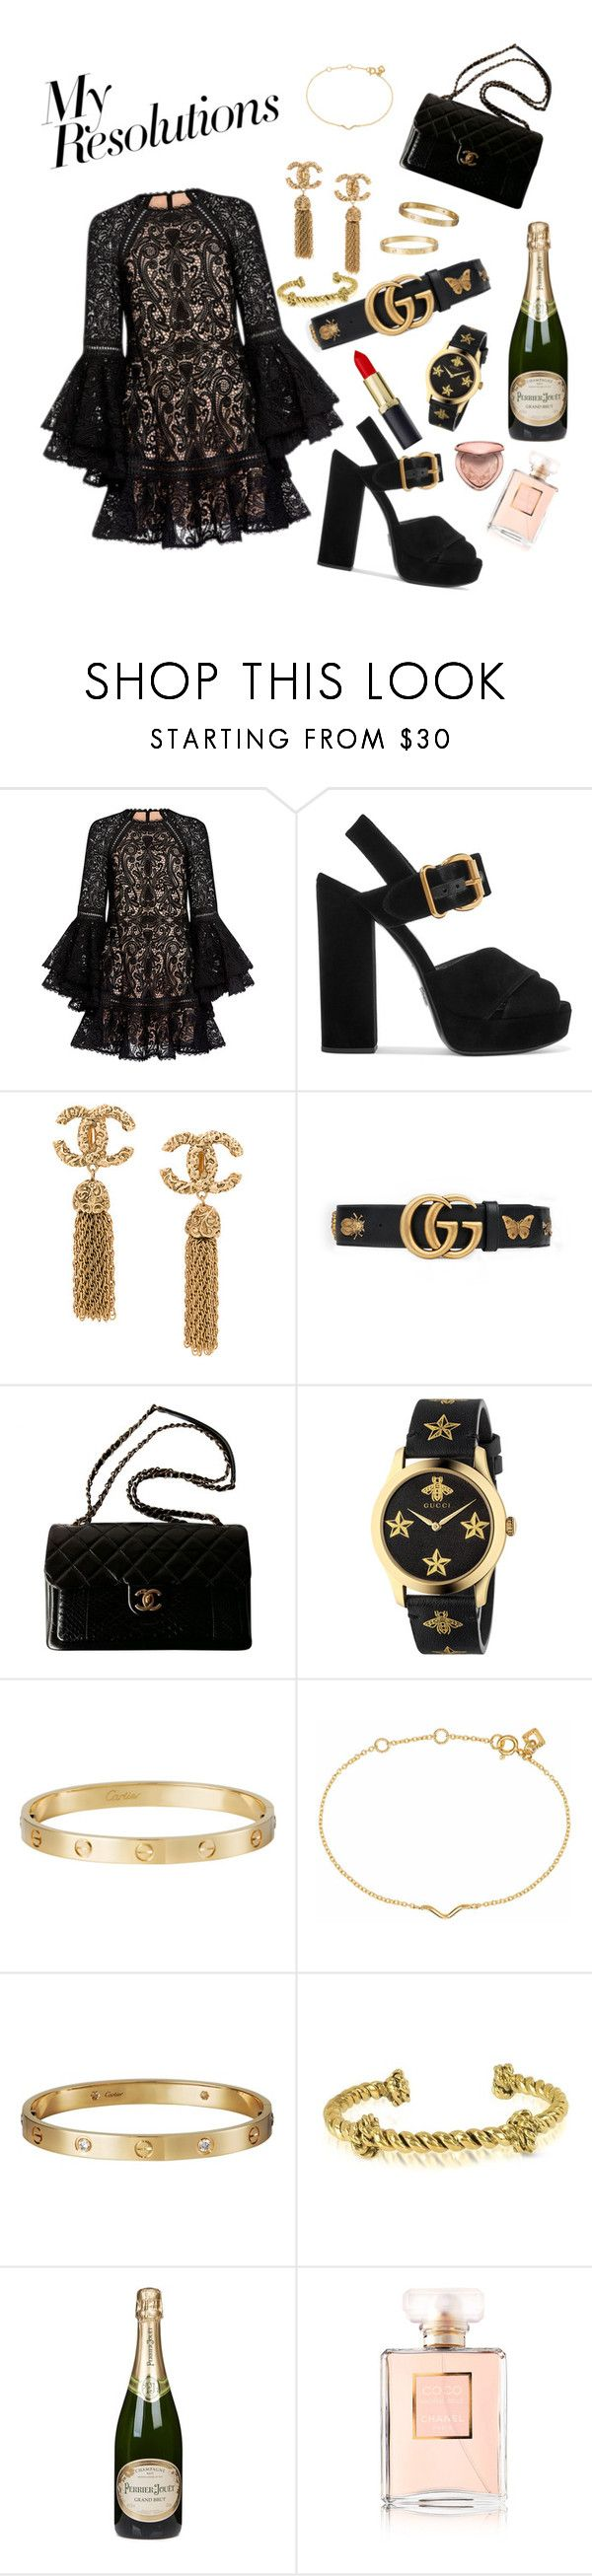 """""""#PolyPresents: New Year's Resolutions"""" by portiapco ❤ liked on Polyvore featuring Alexis, Prada, Gucci, Chanel, Cartier, Maya Magal, Aurélie Bidermann, Perrier-JouÃ«t, Too Faced Cosmetics and contestentry"""